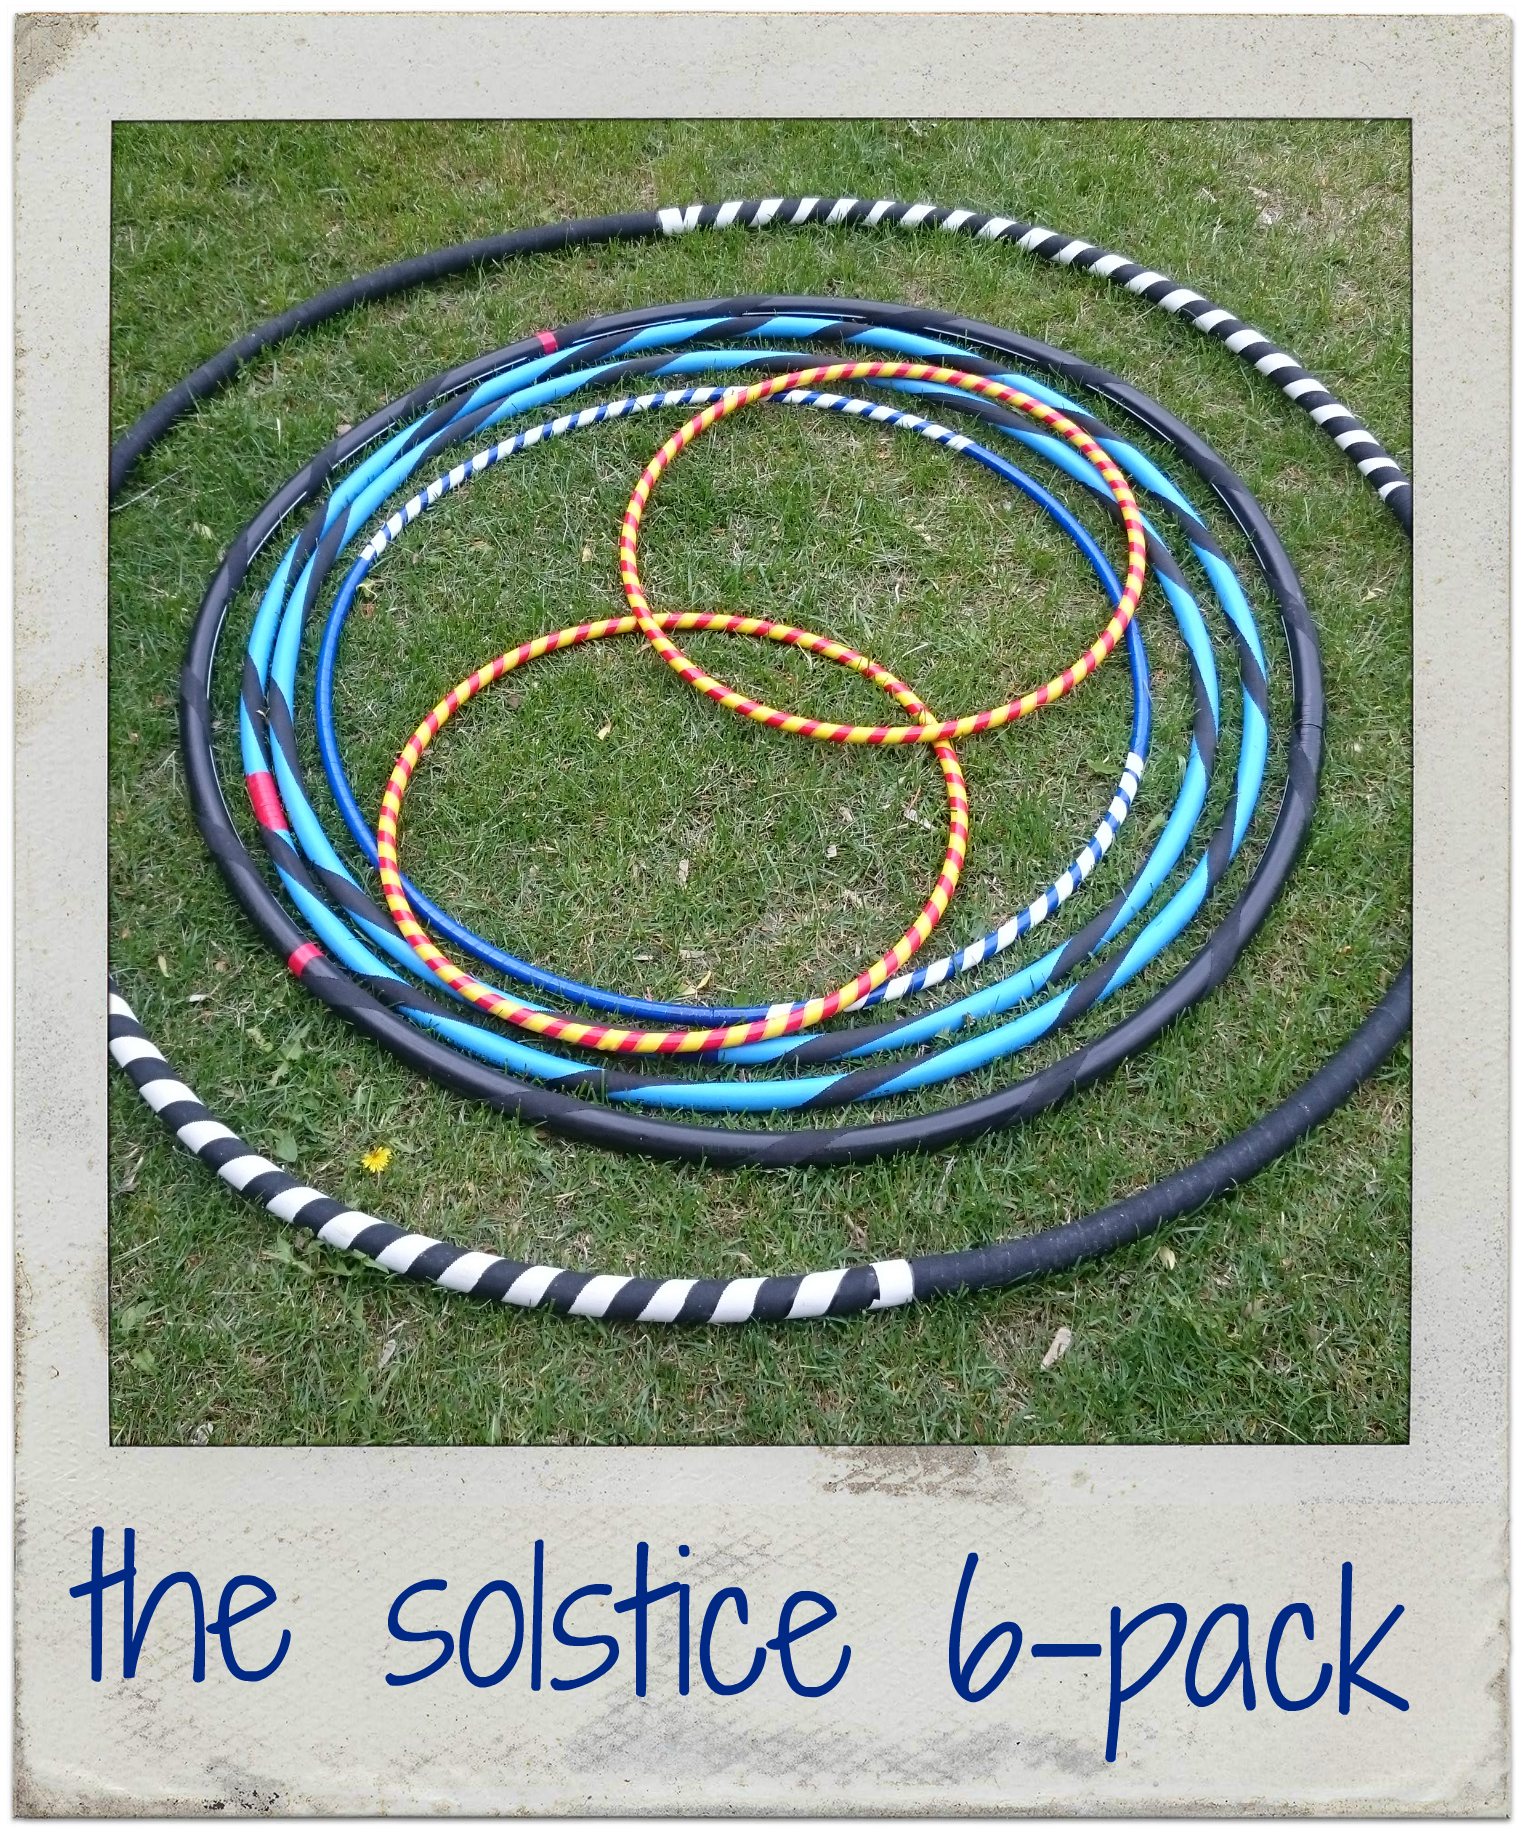 The Solstice 6-Pack